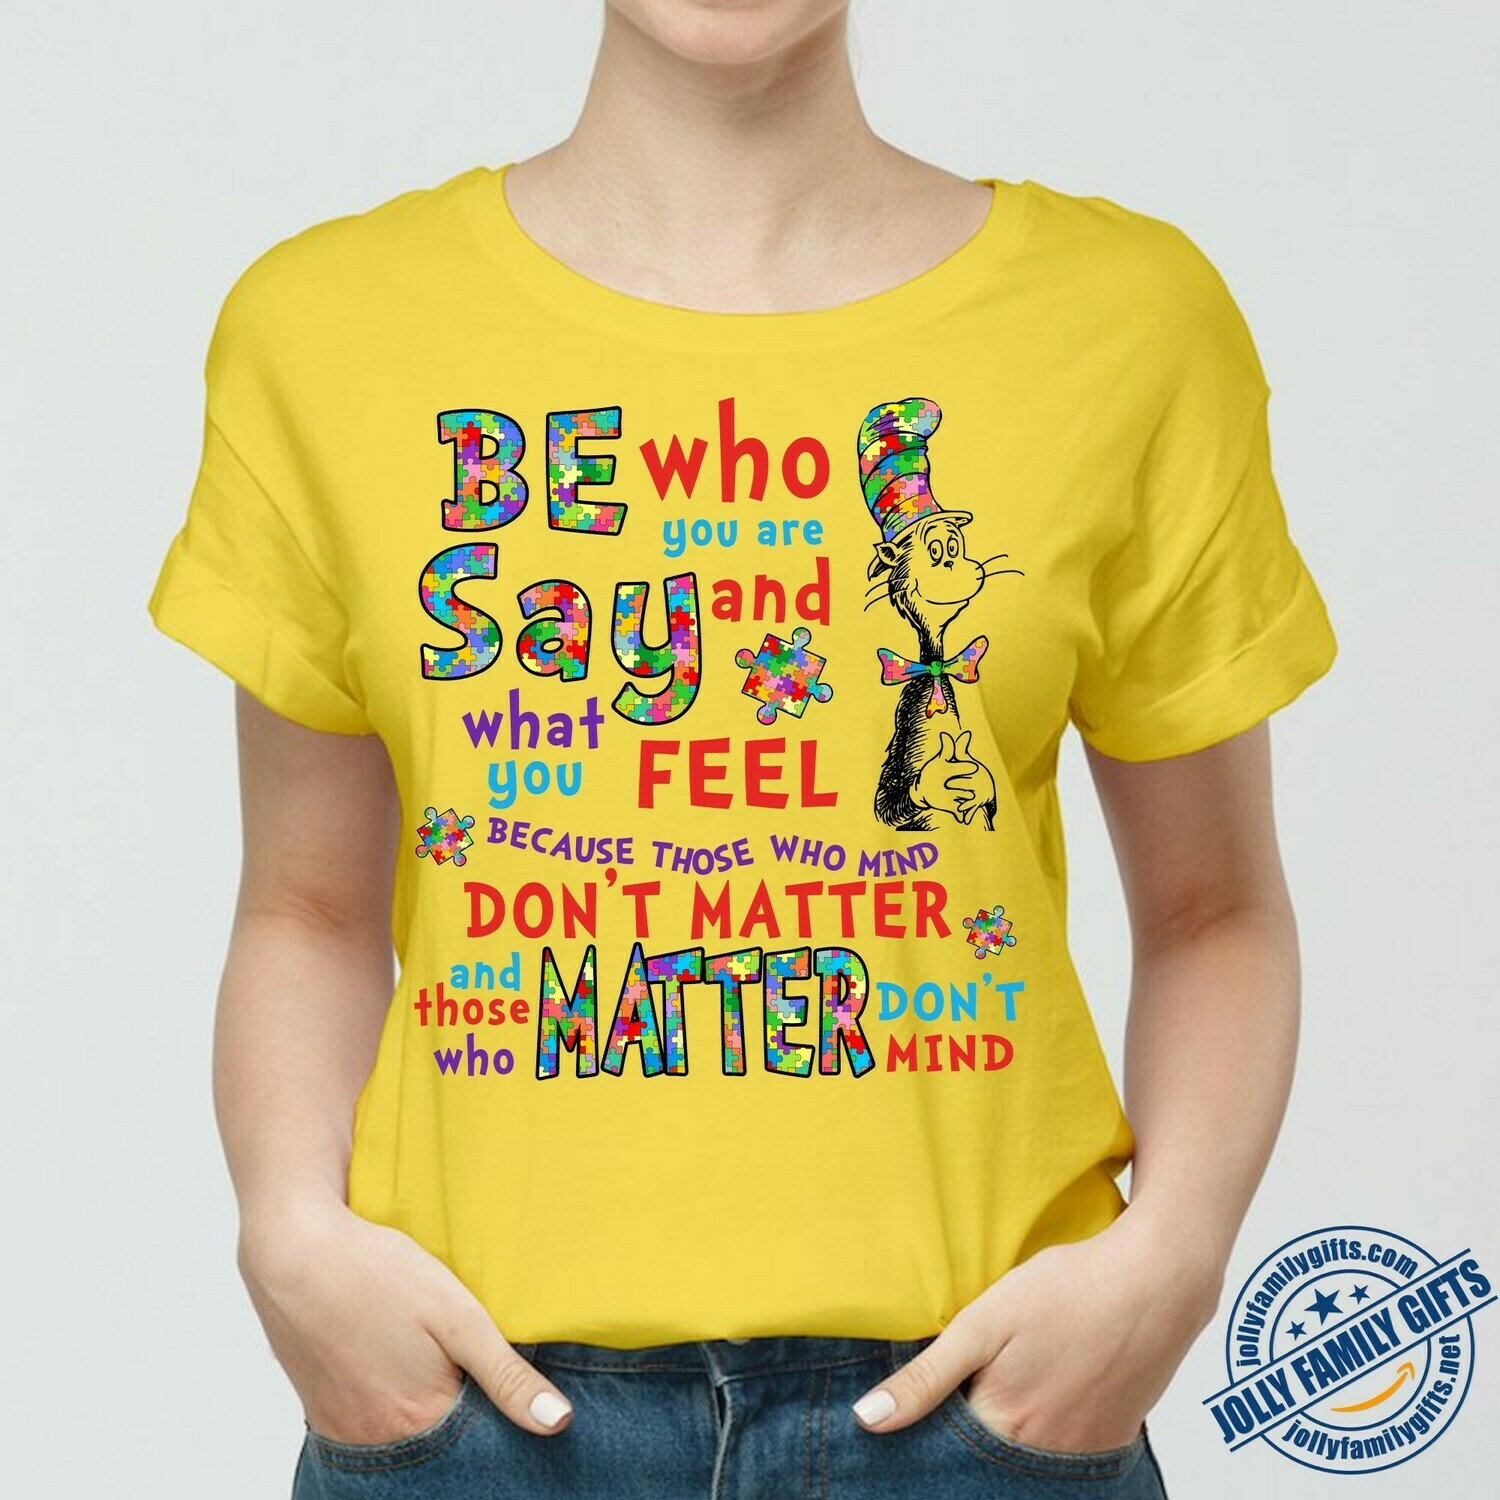 Be Who you are Say what you feel because those Who mind don't matter Dr. Seuss Quotes T-shirt for Men Women Unisex T-Shirt Hoodie Sweatshirt Sweater Plus Size for Ladies Women Men Kids Youth Gifts Tee